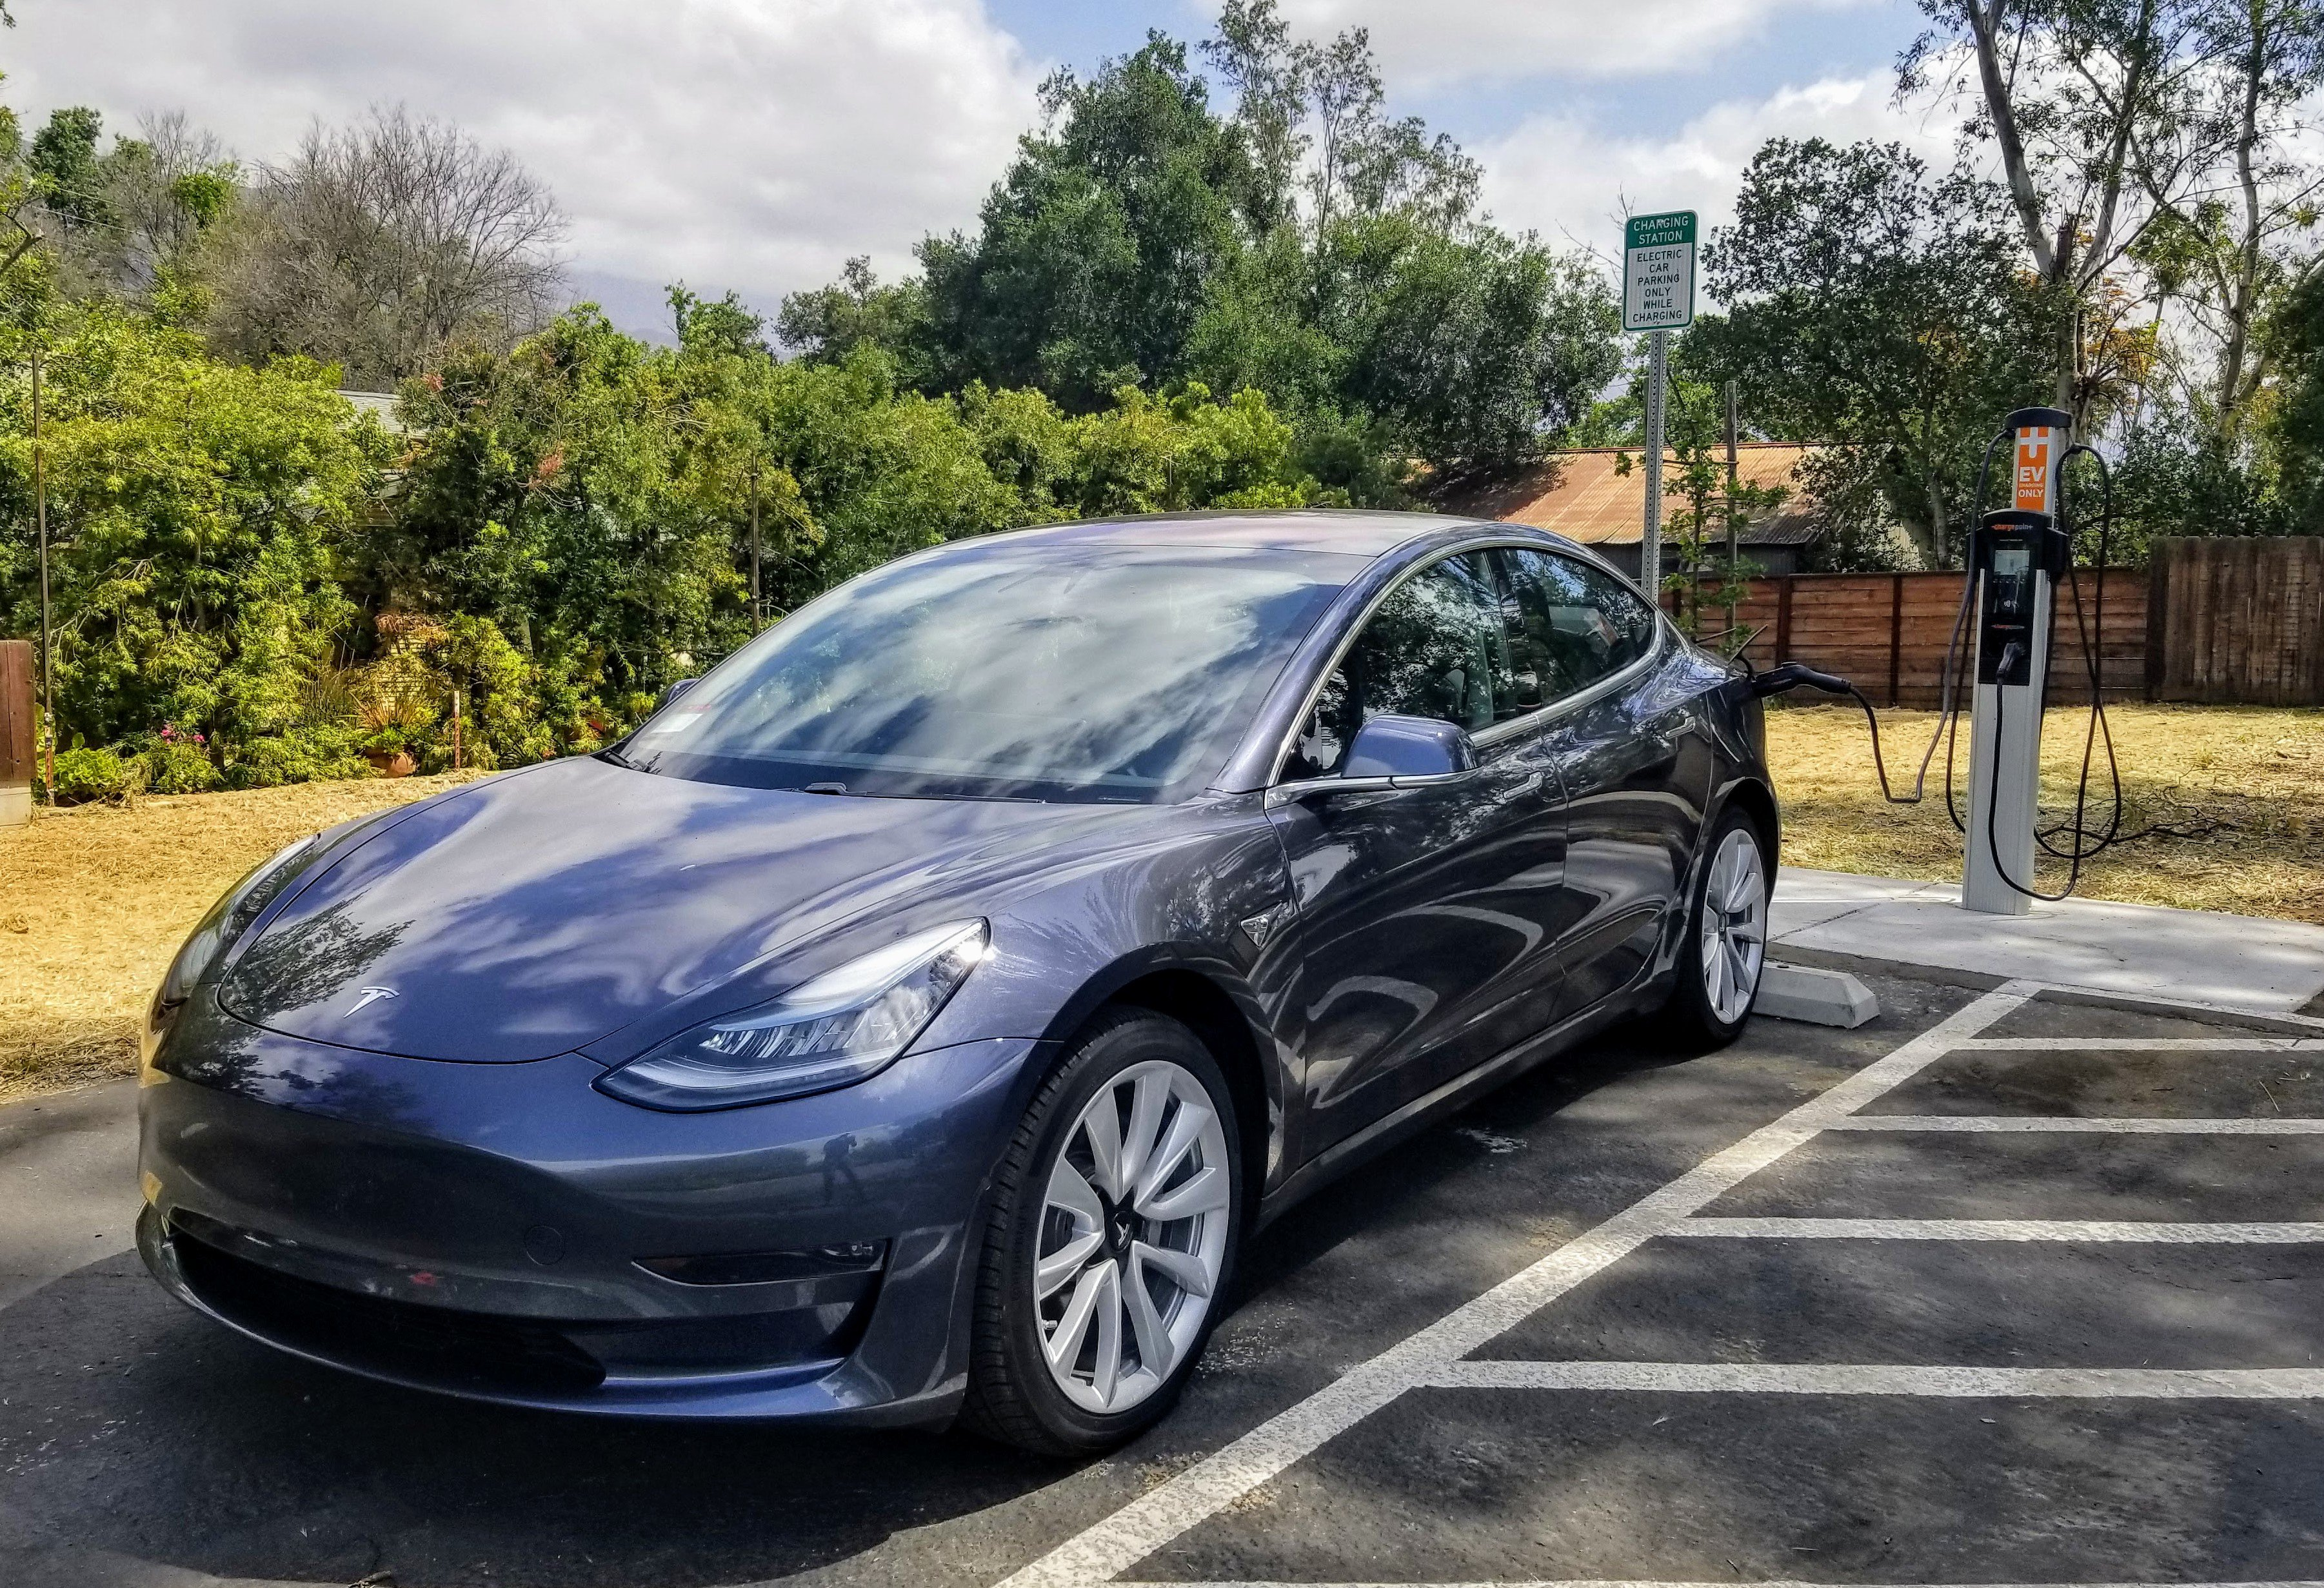 Tesla Model 3 In Europe! Safest, Techiest, Quickest Review